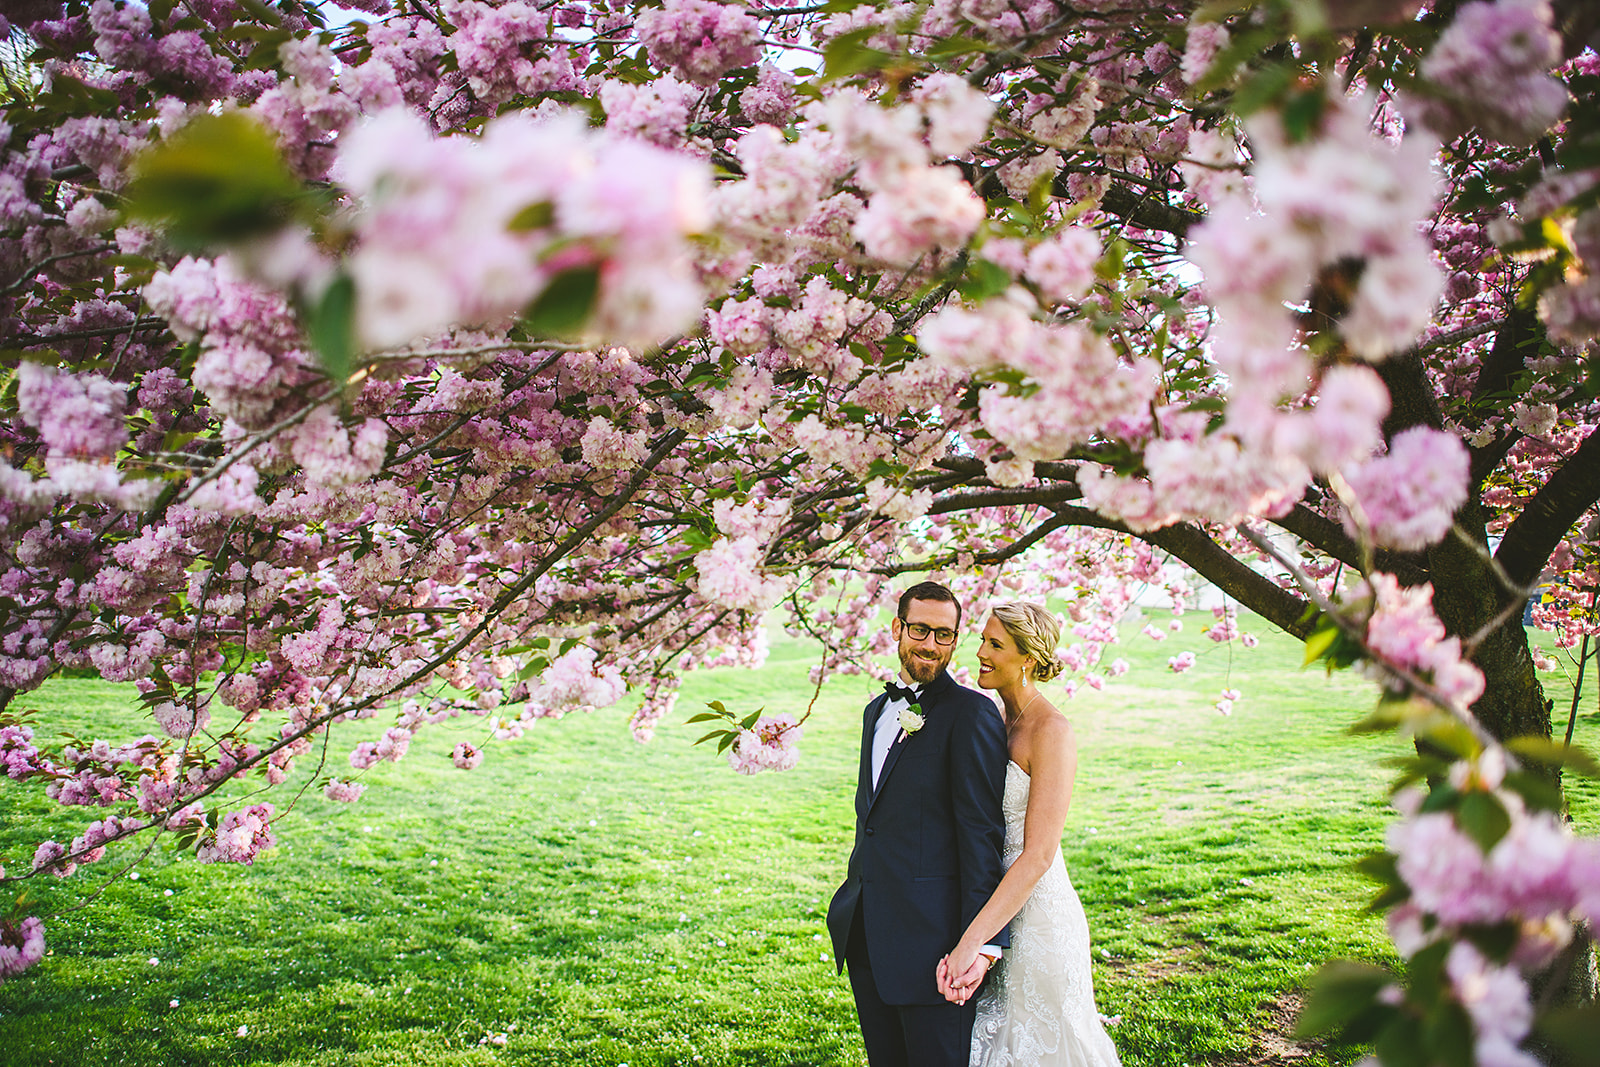 Atelier Ashley Flowers + Sam Hurd Photography + Washington Golf and Country Club + Diamond and Pearl Wedding +  Cherry Blossom Wedding + Cherry blossom wedding Portrait + boutonniere